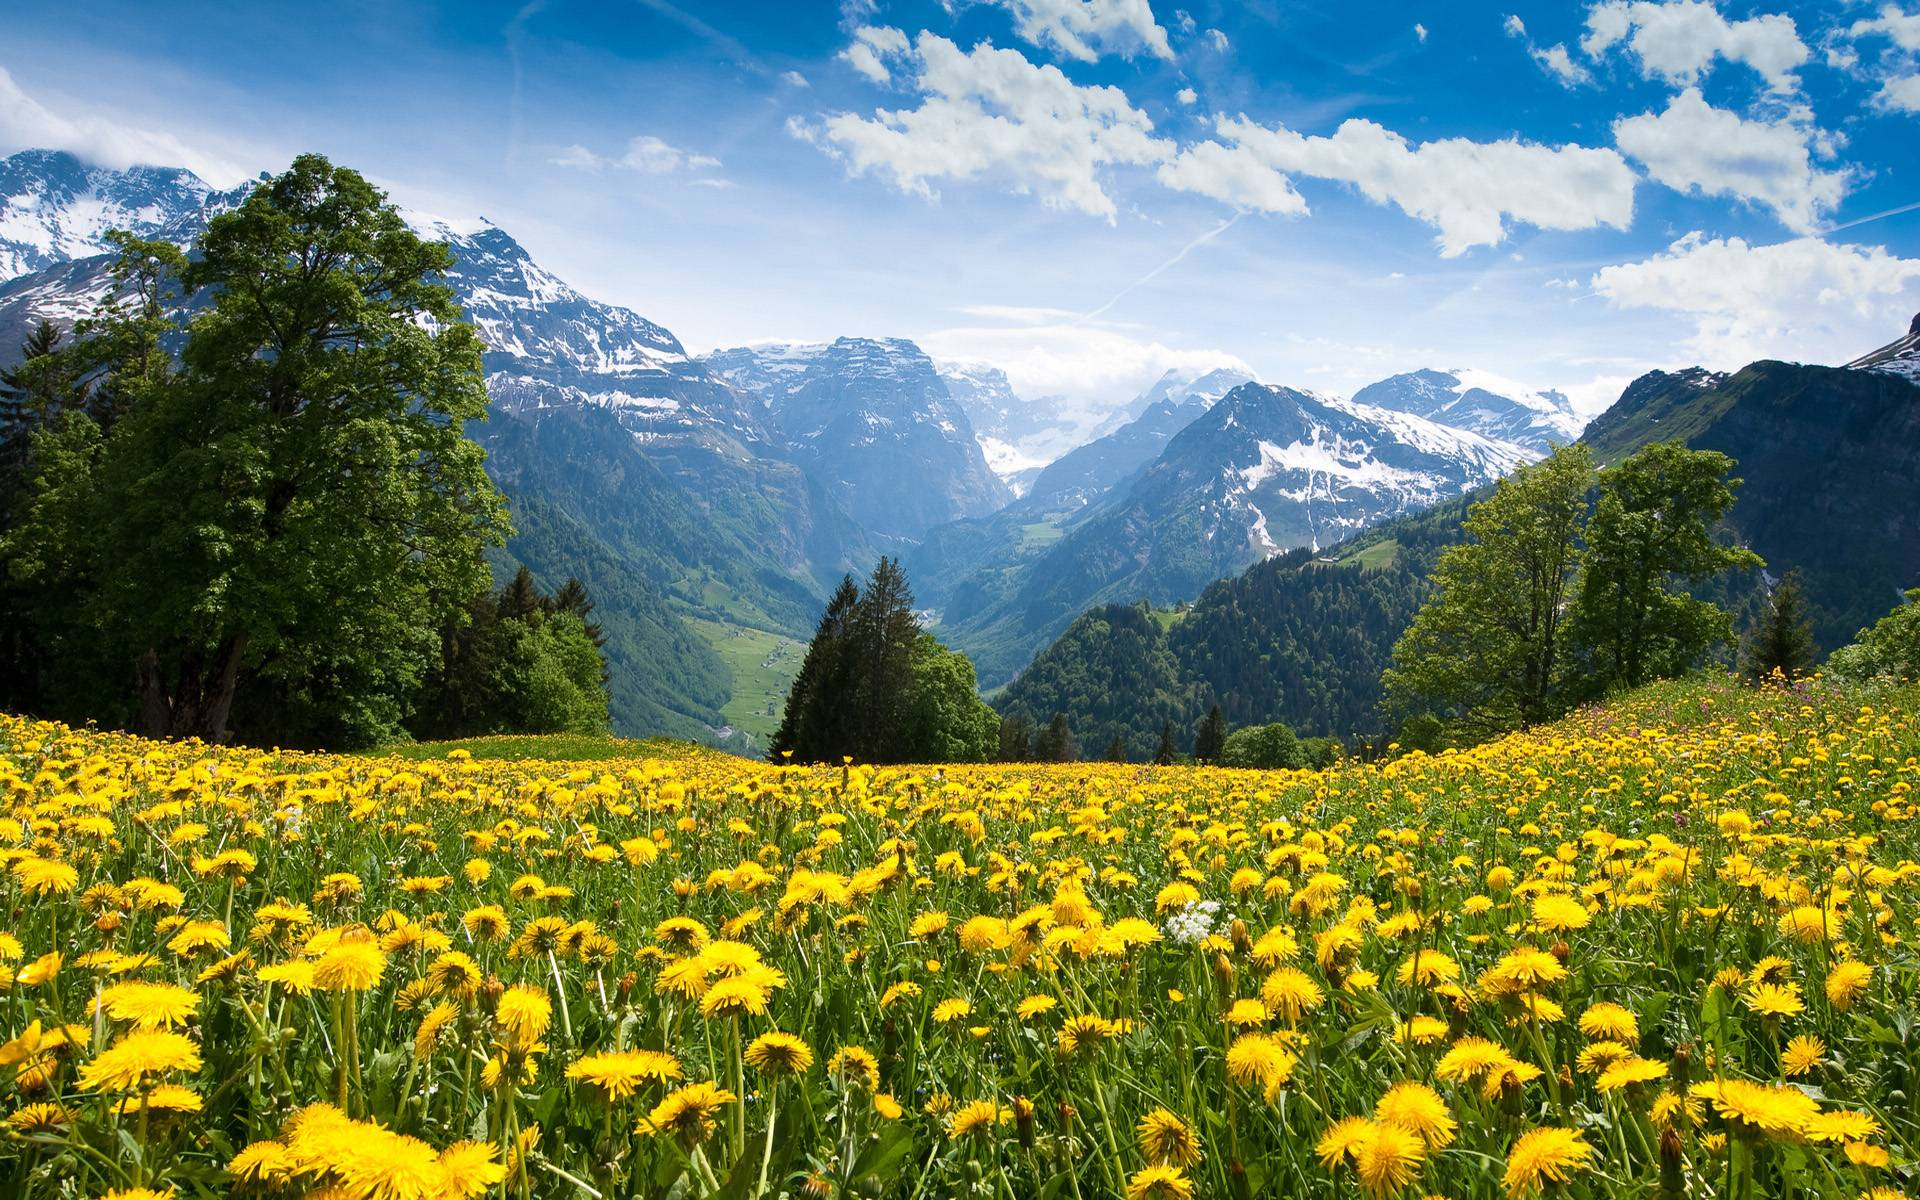 Scene 2014 of Alps Mountain See Both Summer / Wallpapers Summer